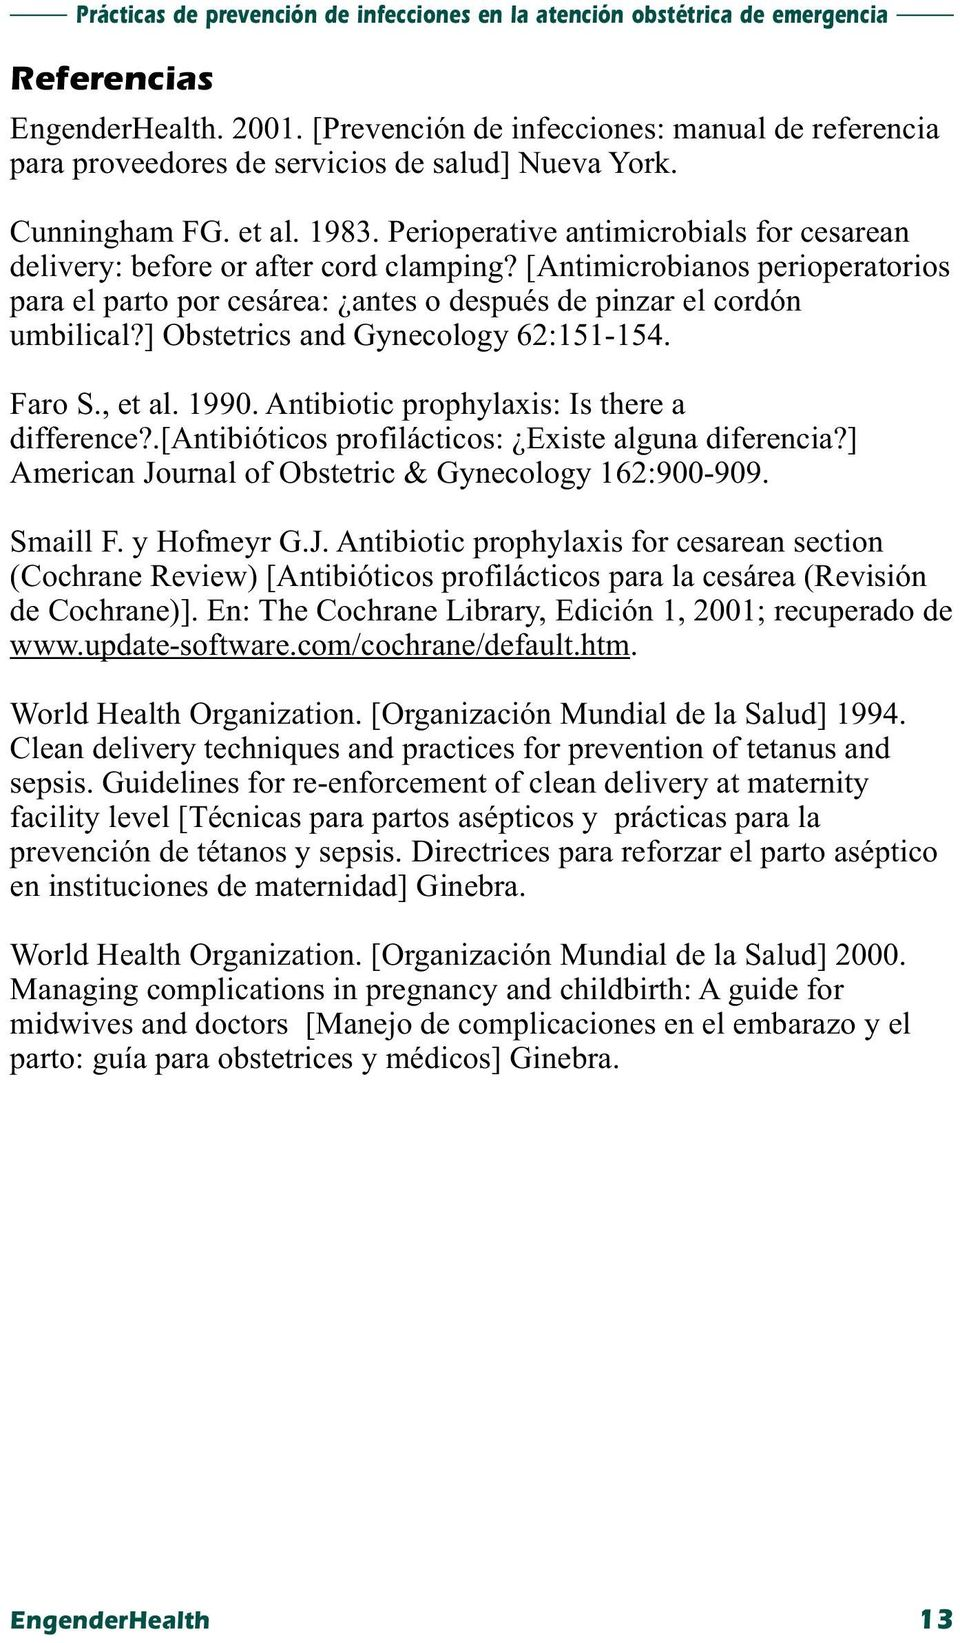 ] Obstetrics and Gynecology 62:151-154. Faro S., et al. 1990. Antibiotic prophylaxis: Is there a difference?.[antibióticos profilácticos: Existe alguna diferencia?